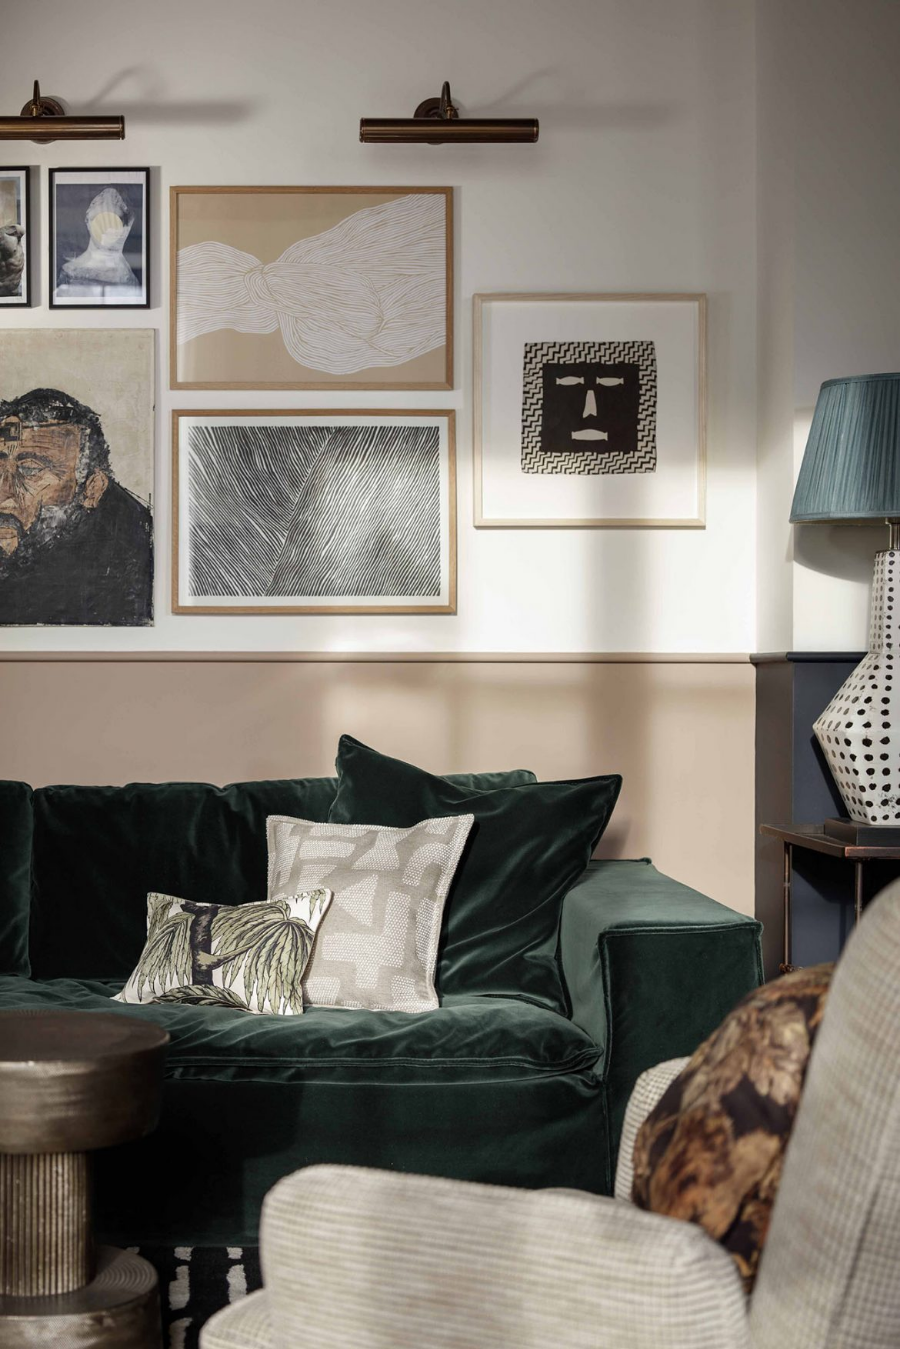 decorex international Decorex International: All You Need to Know About The Design Encounter canva photo editor 3